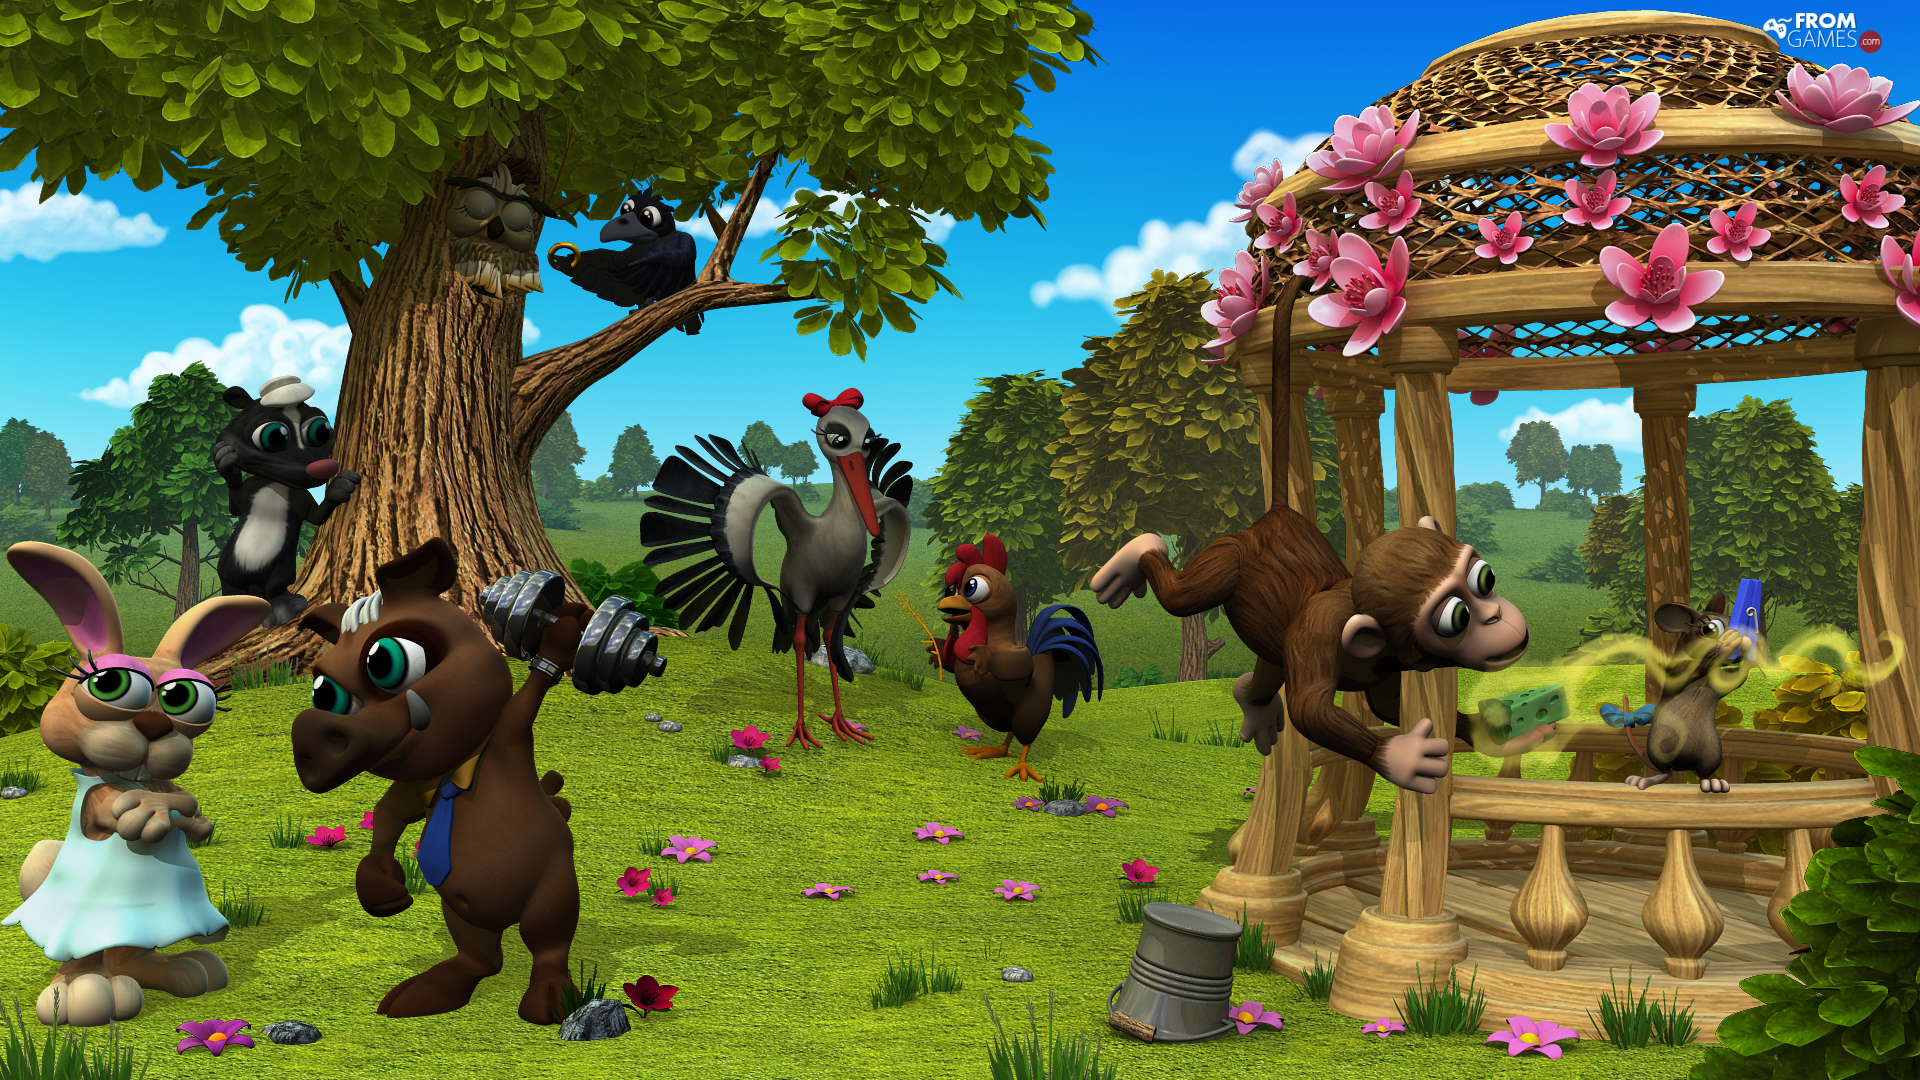 Rabbit, Farmerama, Bird, rooster, game, Monkey, trees